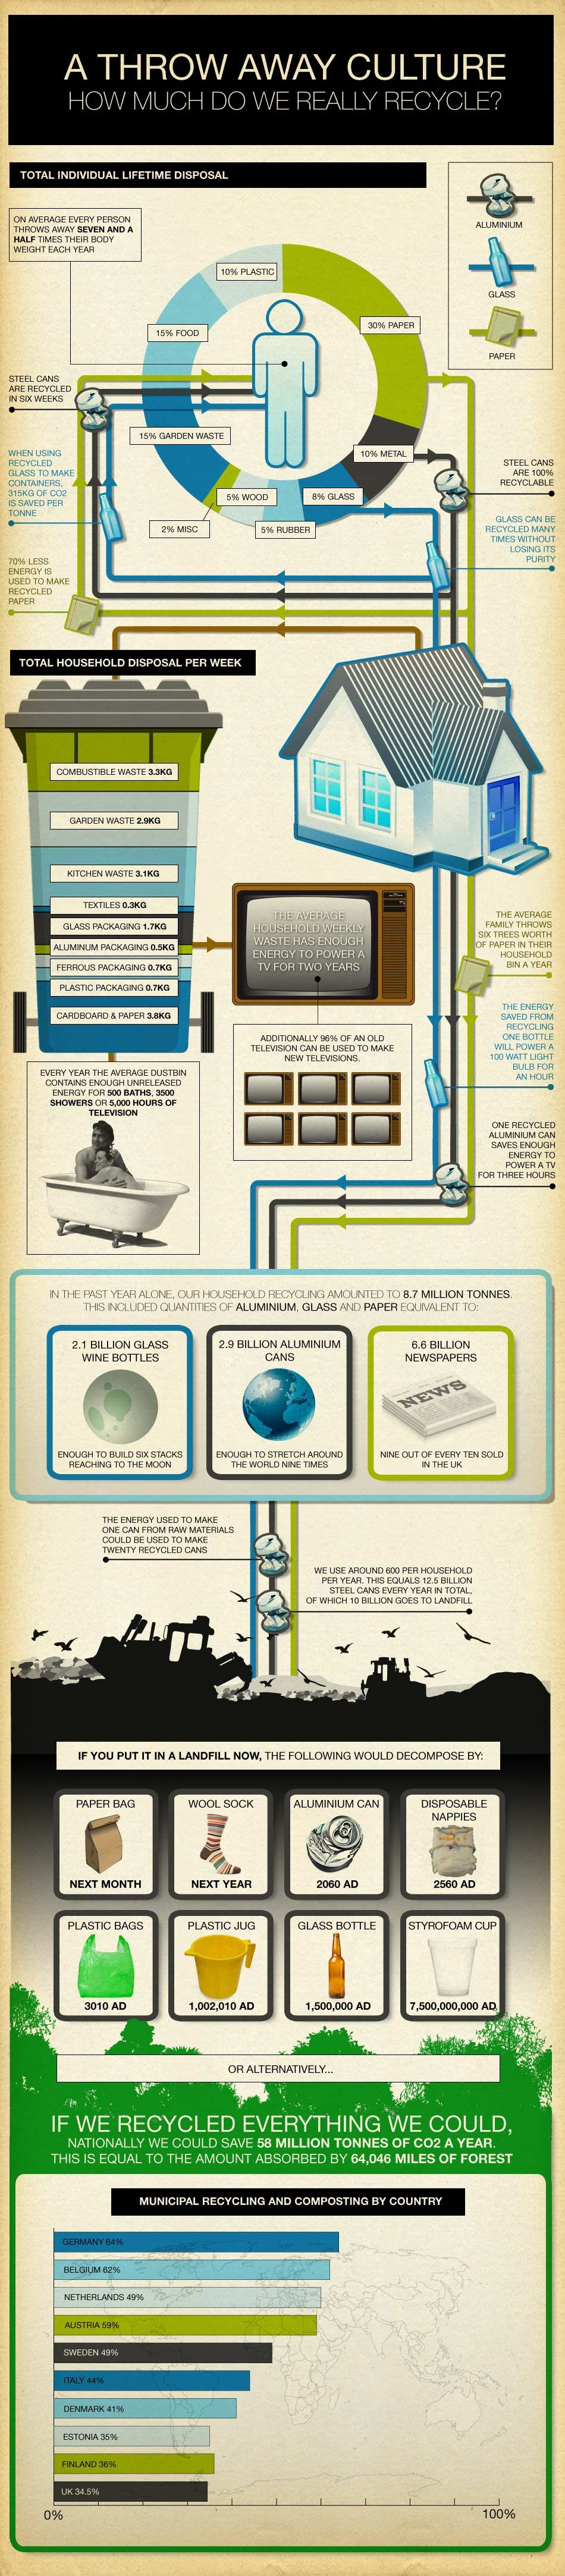 How Much Do We Really Recycle Infographic Recycling Recycling Facts Infographic